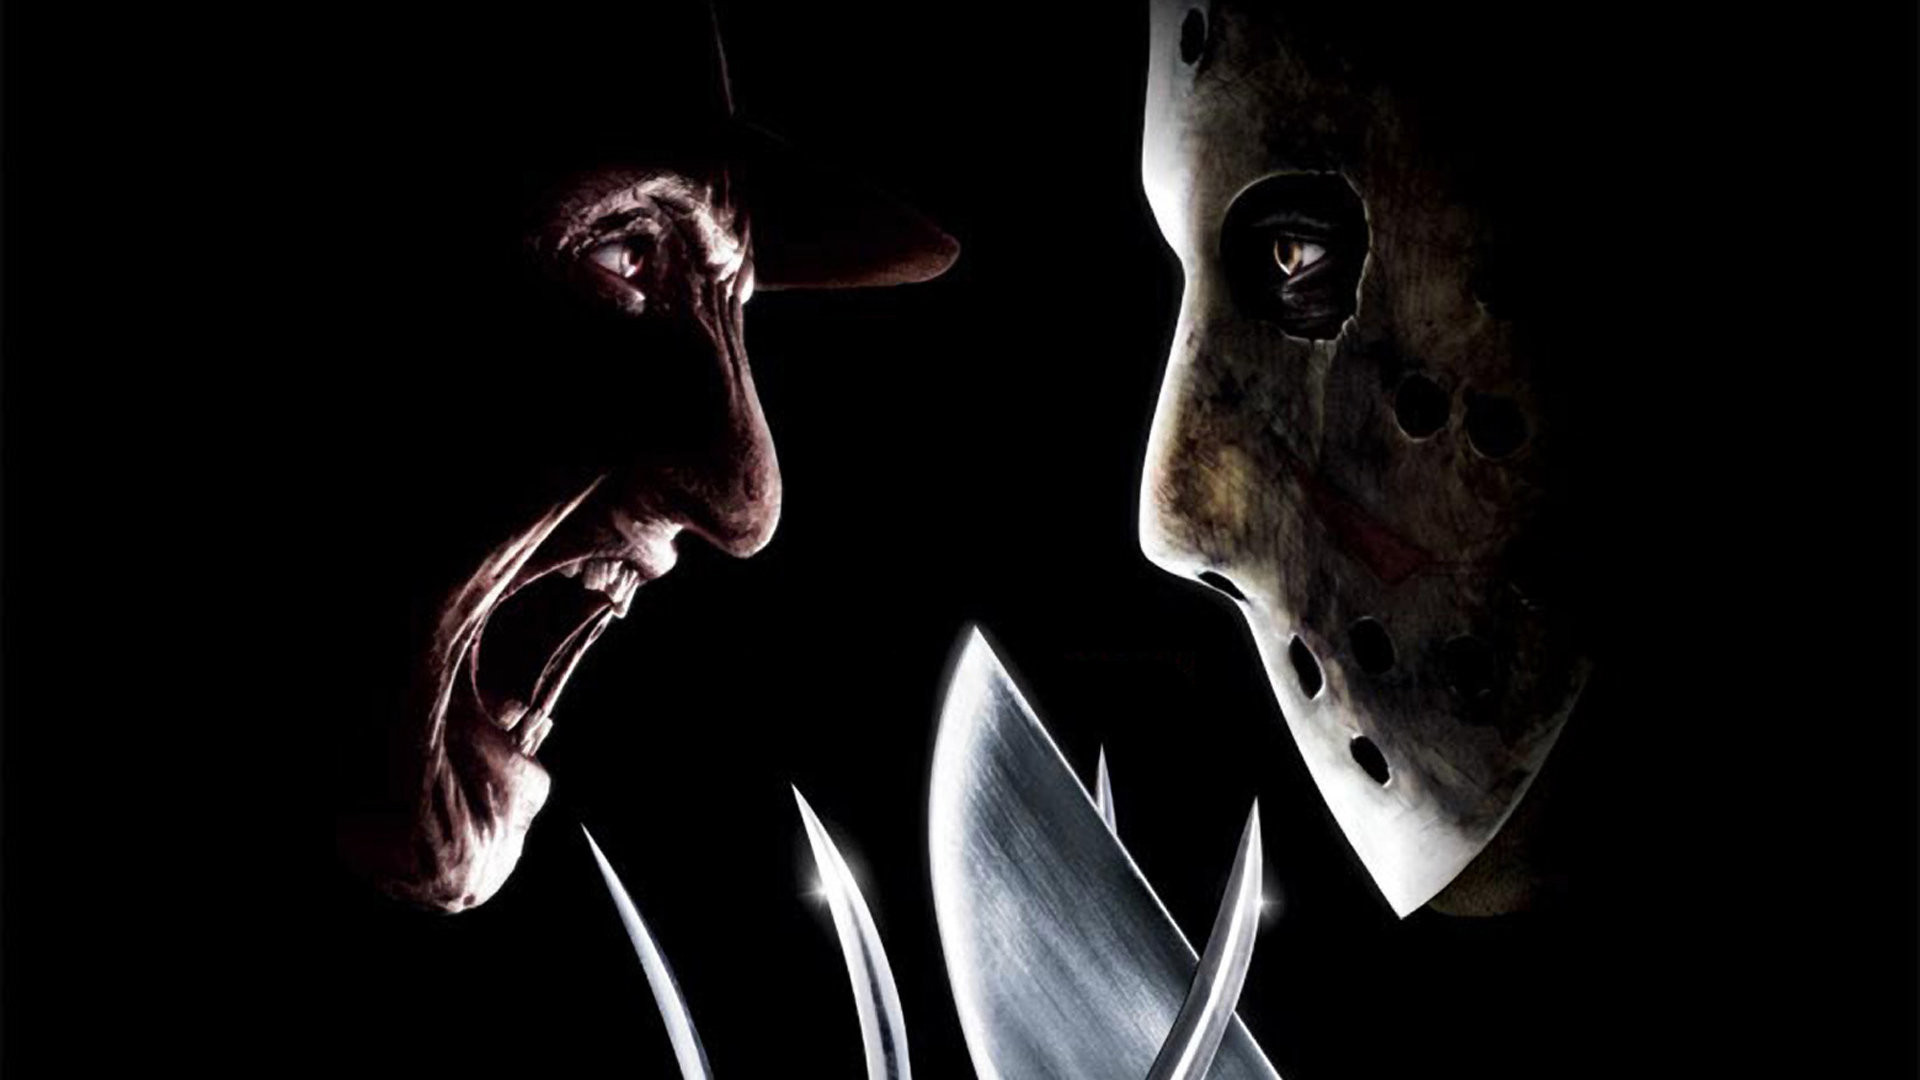 1920x1080 Freddy Krueger Wallpapers Backgrounds For PC Mac Tablet Laptop Mobile